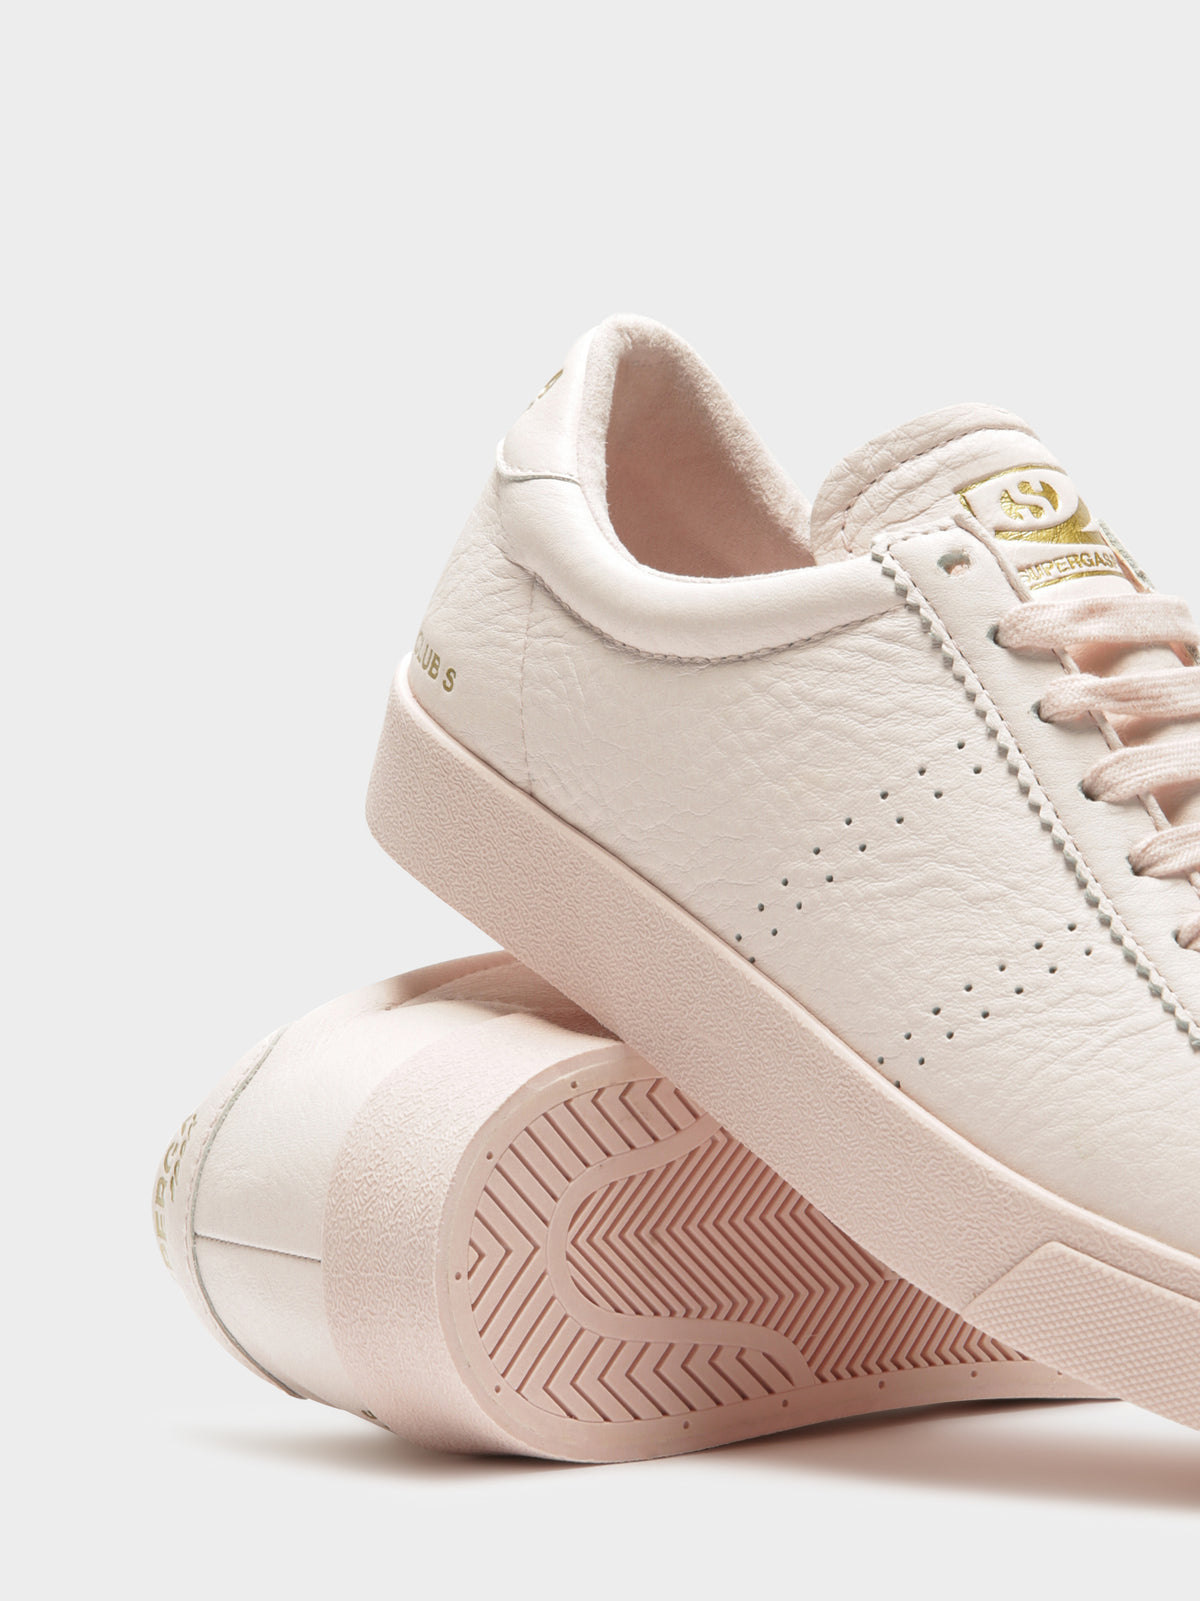 Womens 2843 Tumbled Leather Sneakers in Pink